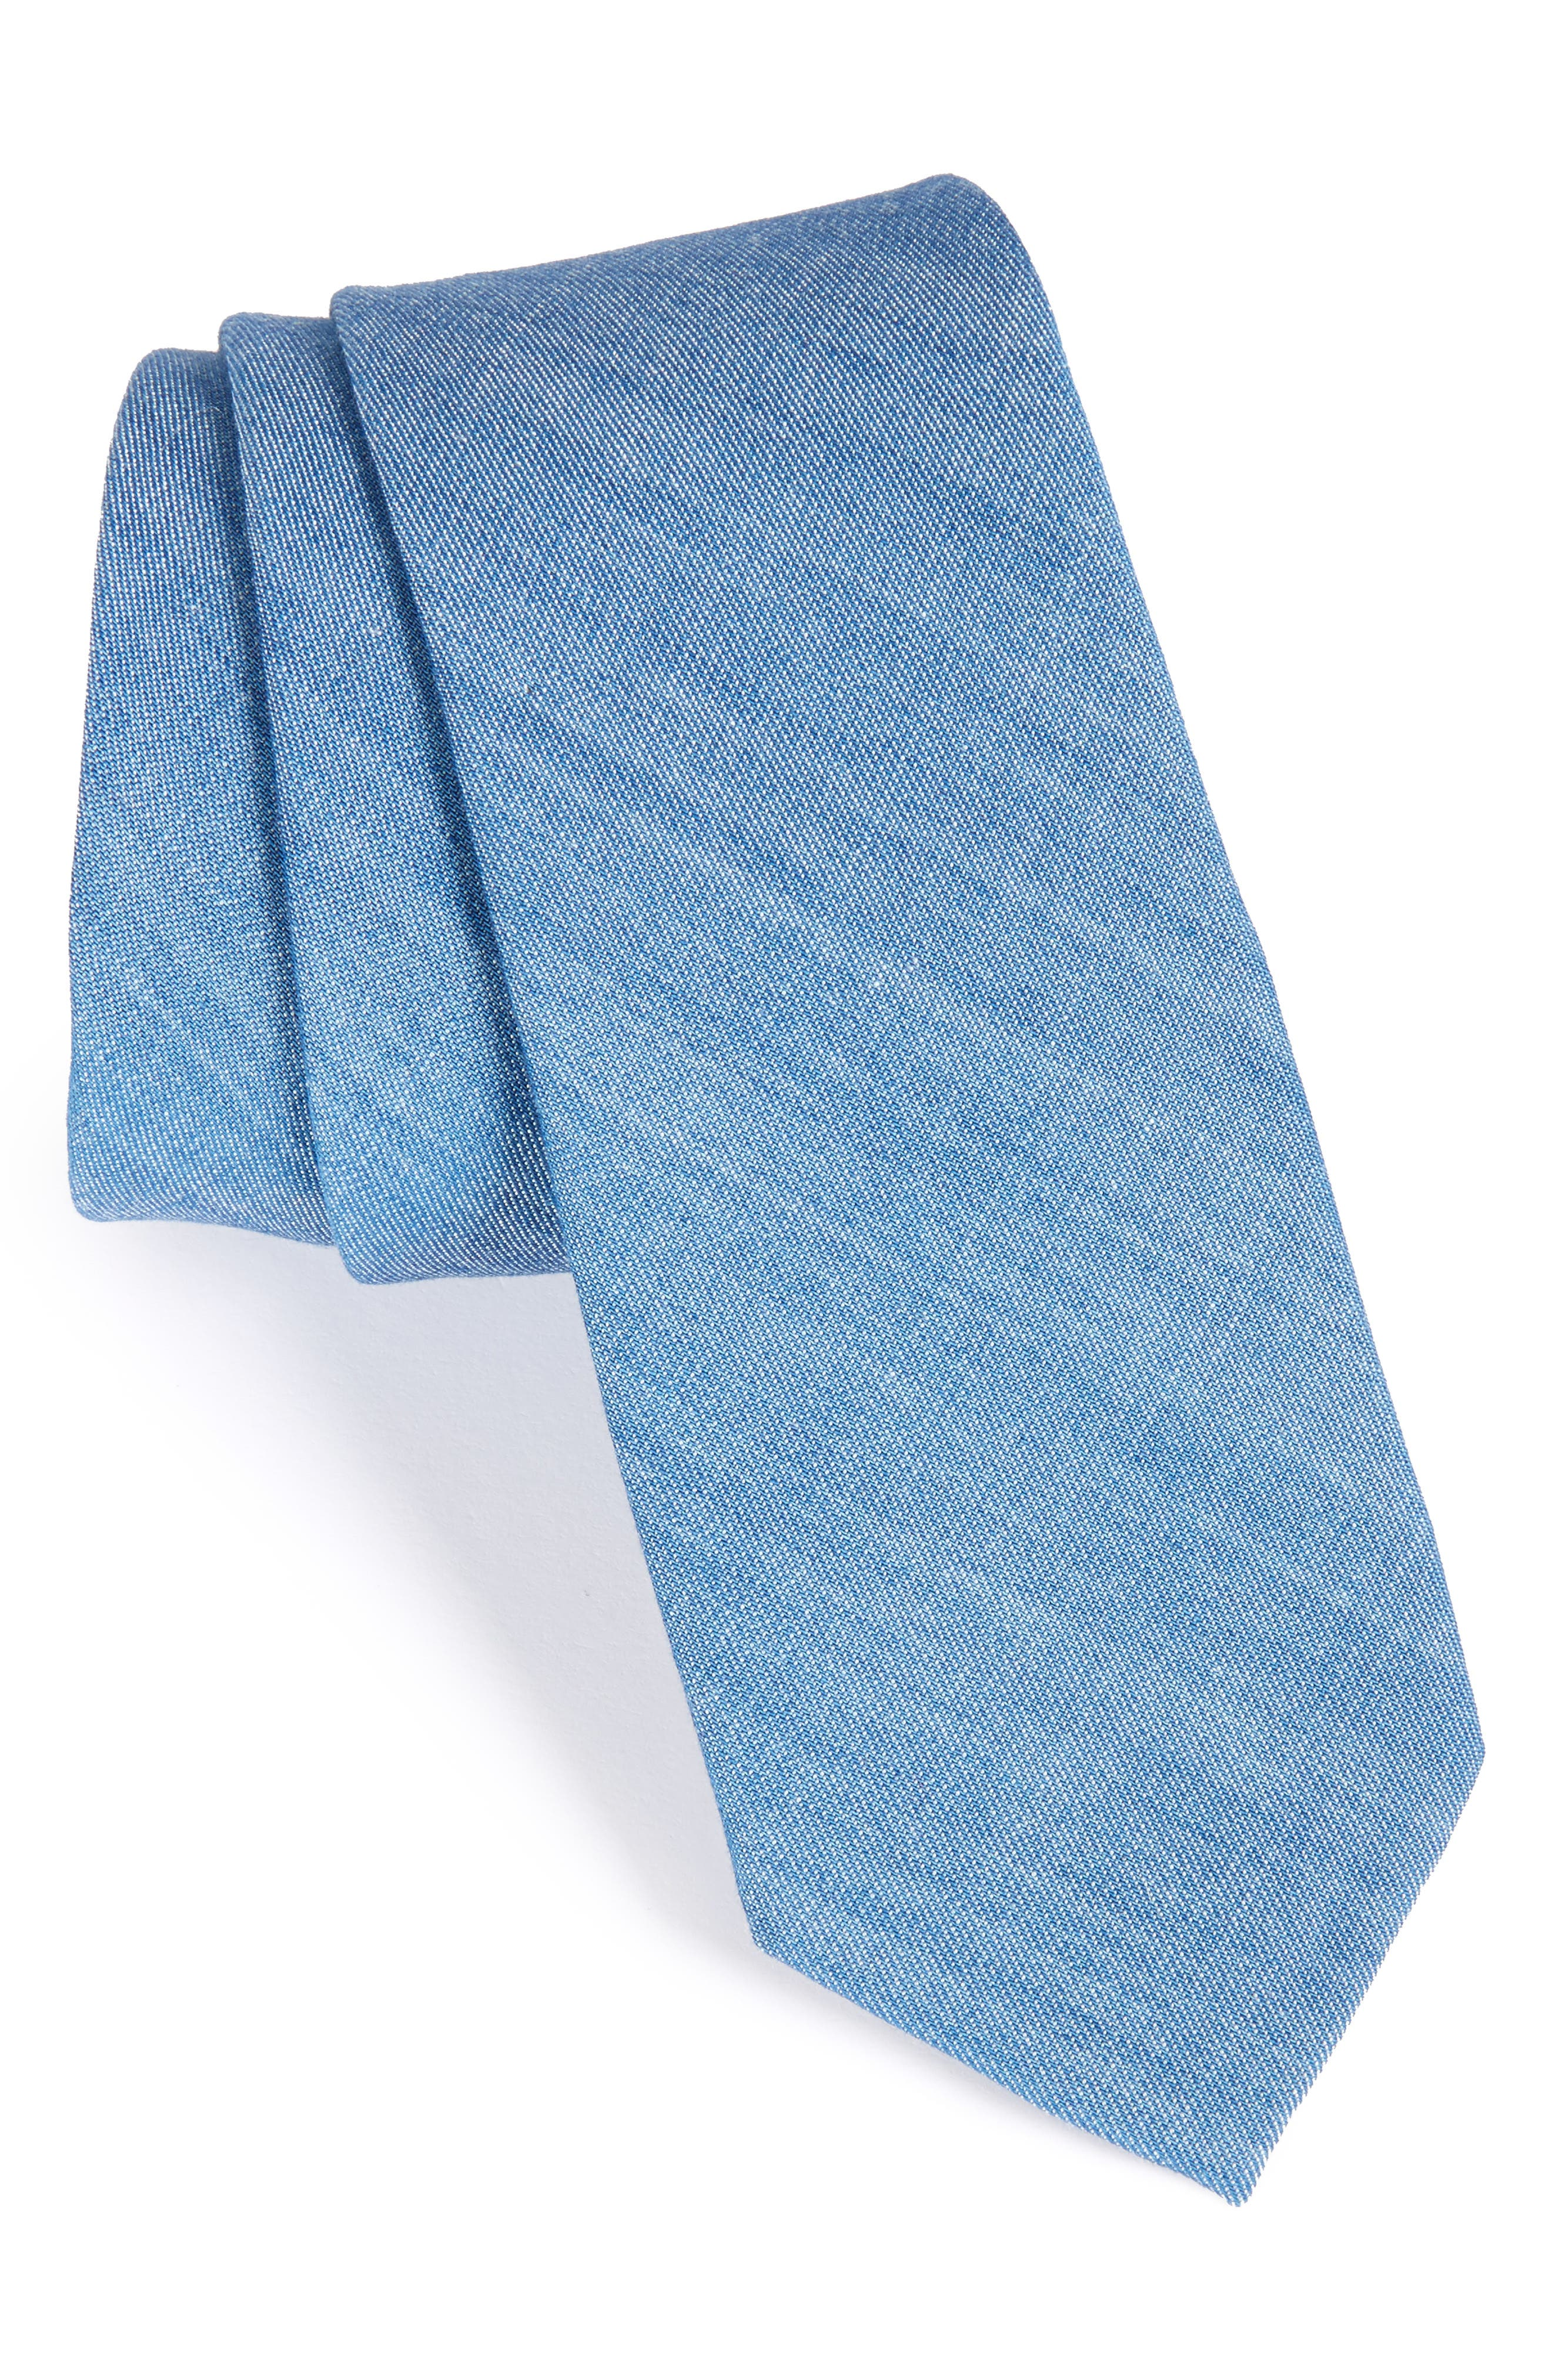 Solid Cotton Blend Skinny Tie,                             Main thumbnail 1, color,                             400